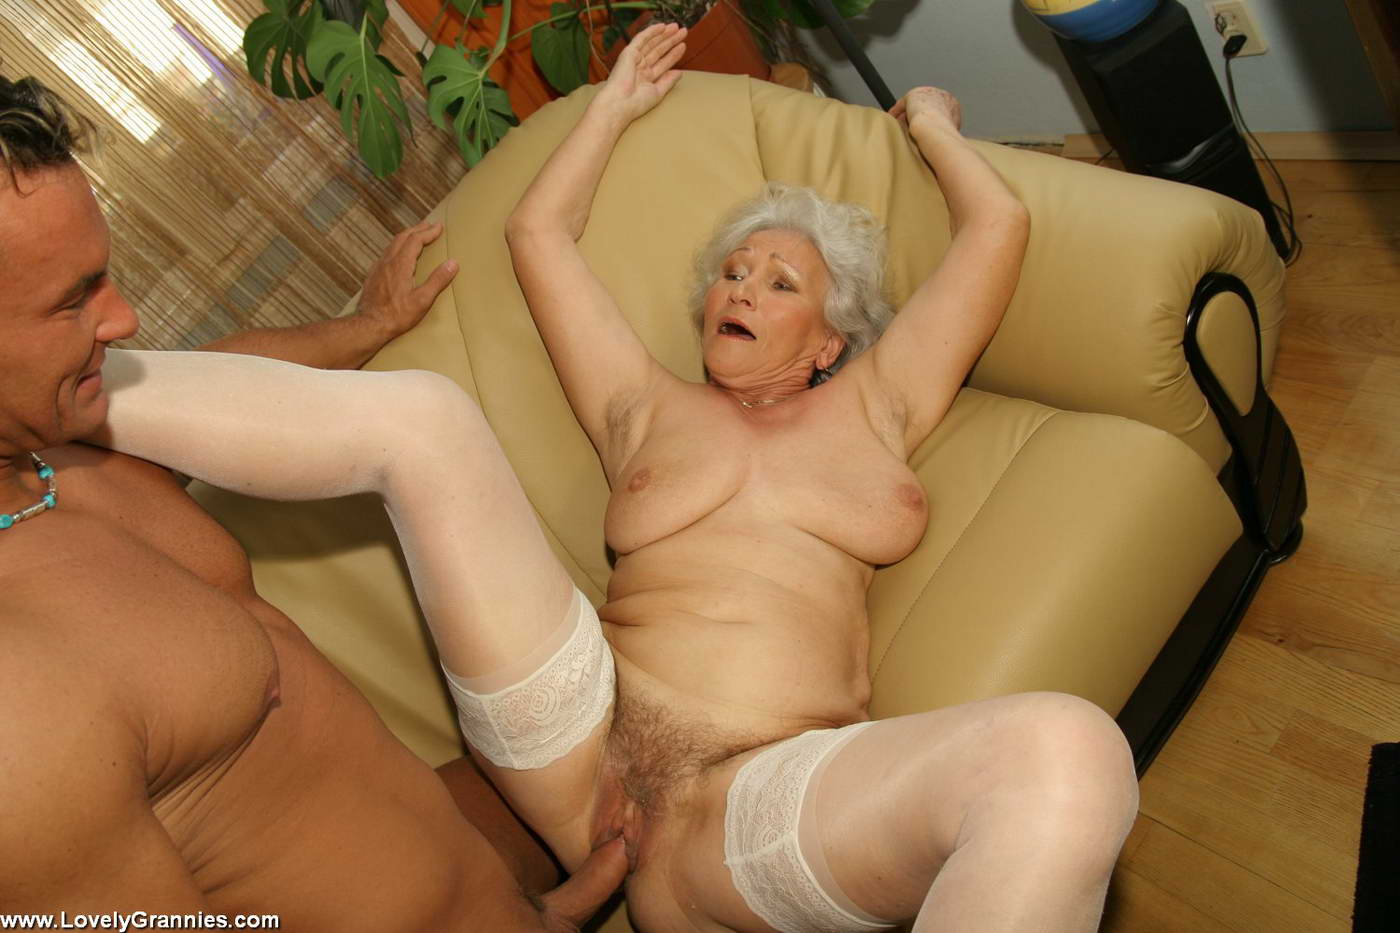 grandmas-having-sexporn-junior-filipina-pussy-sex